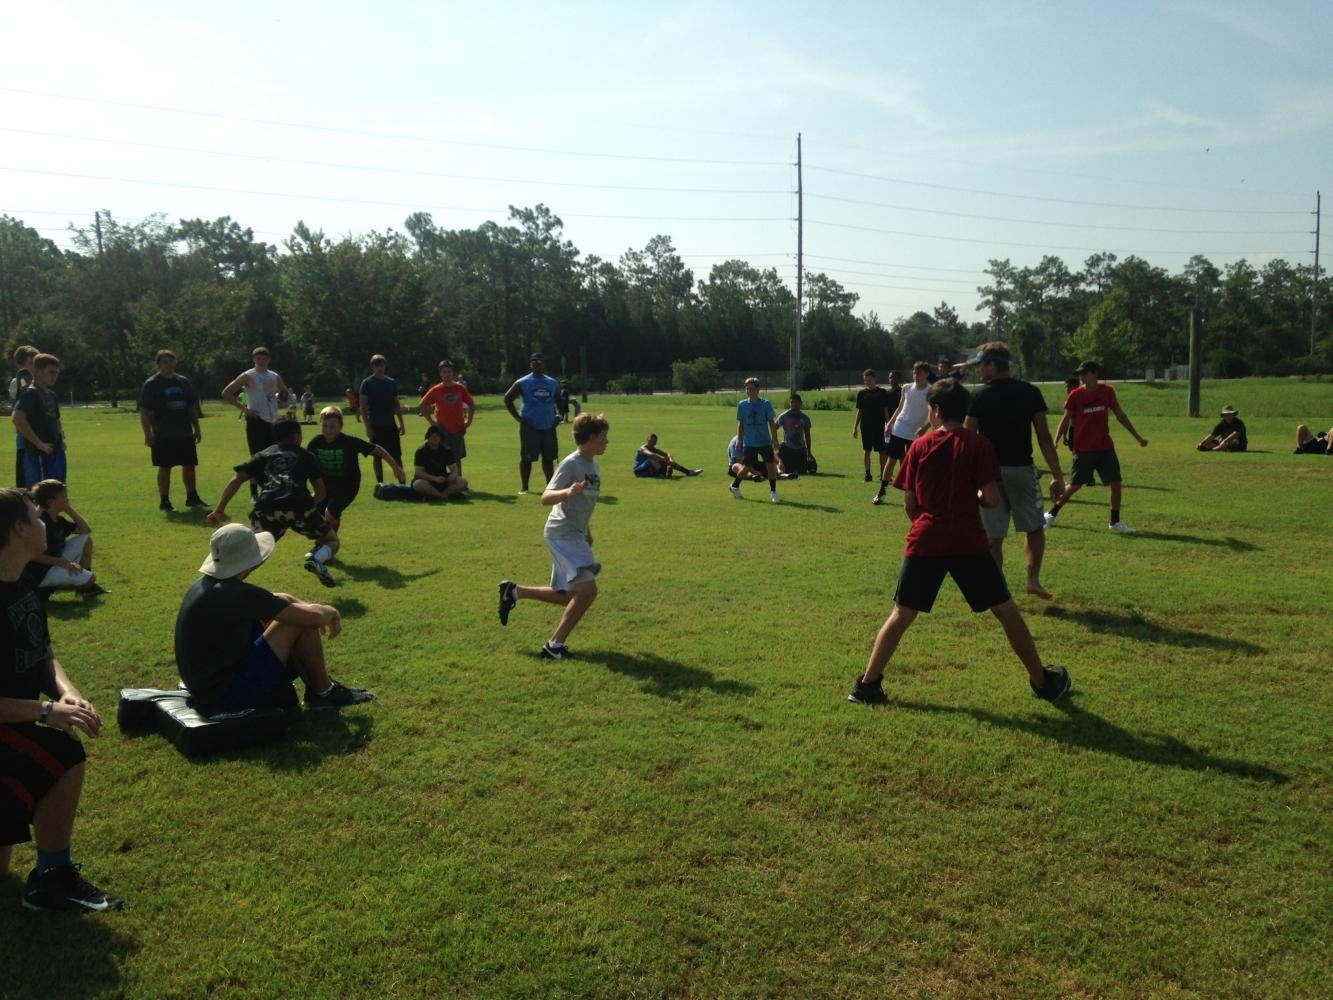 Campers+play+tag+to+practice+tracking+the+ball+carrier.+74+kids+attended+the+camp.